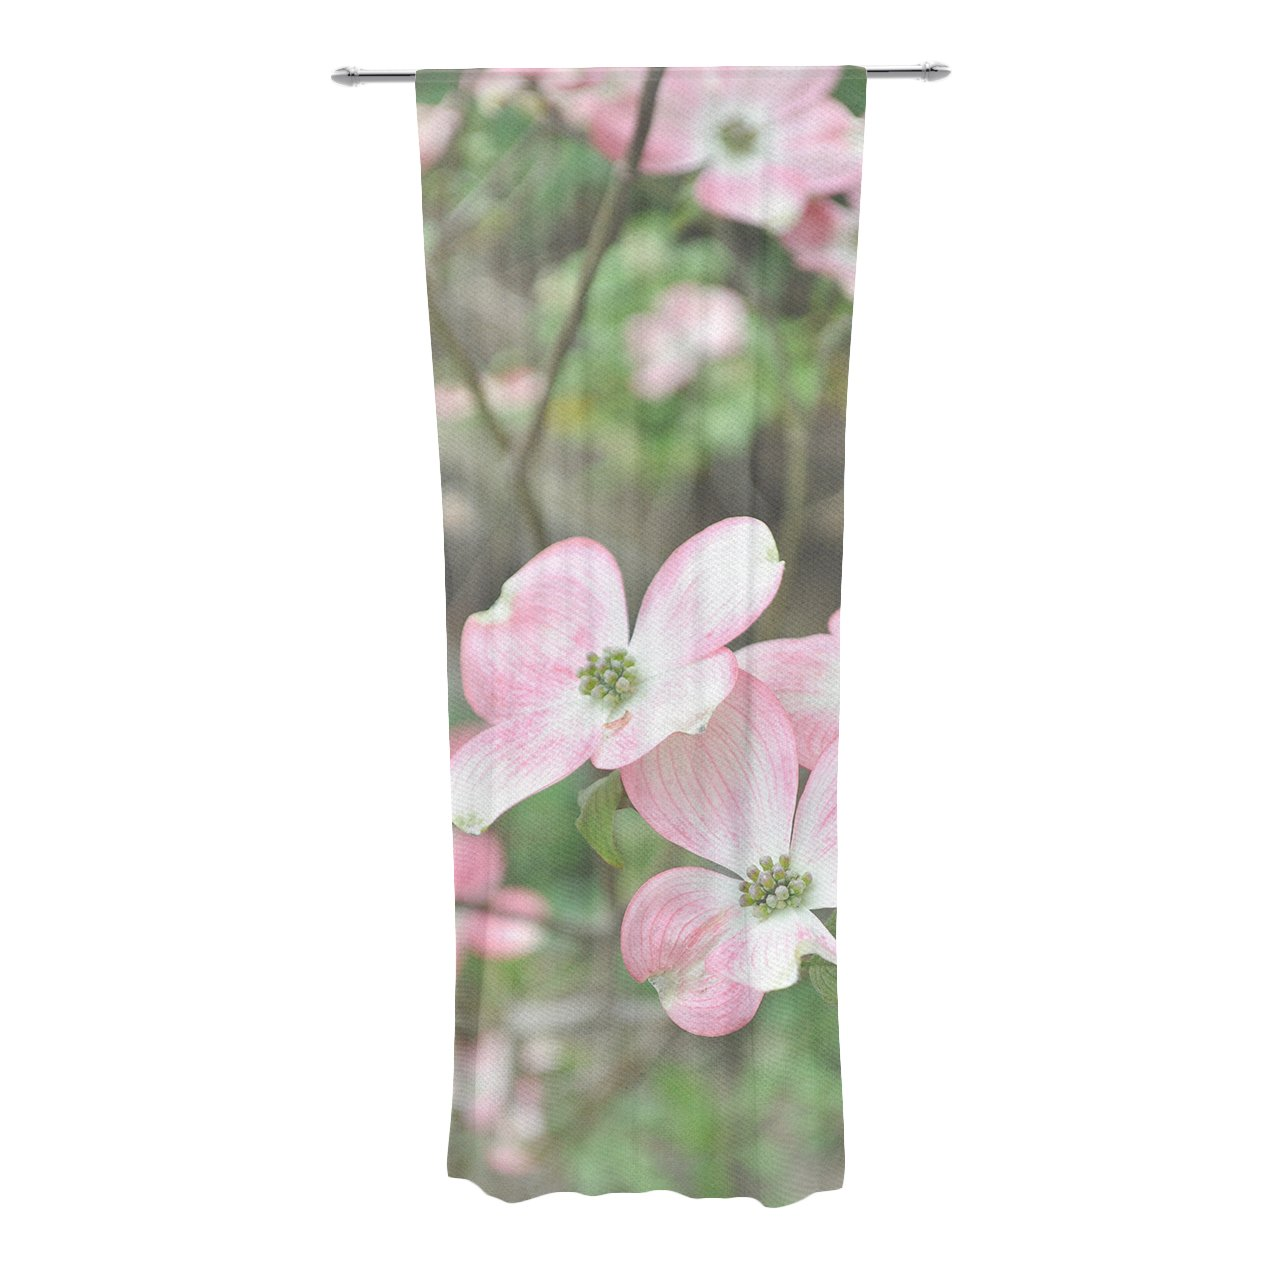 30 x 84 Sheer Curtains Kess InHouse Jennifer Rizzo Spring Flowering Dogwood Pink Green Decorative Set